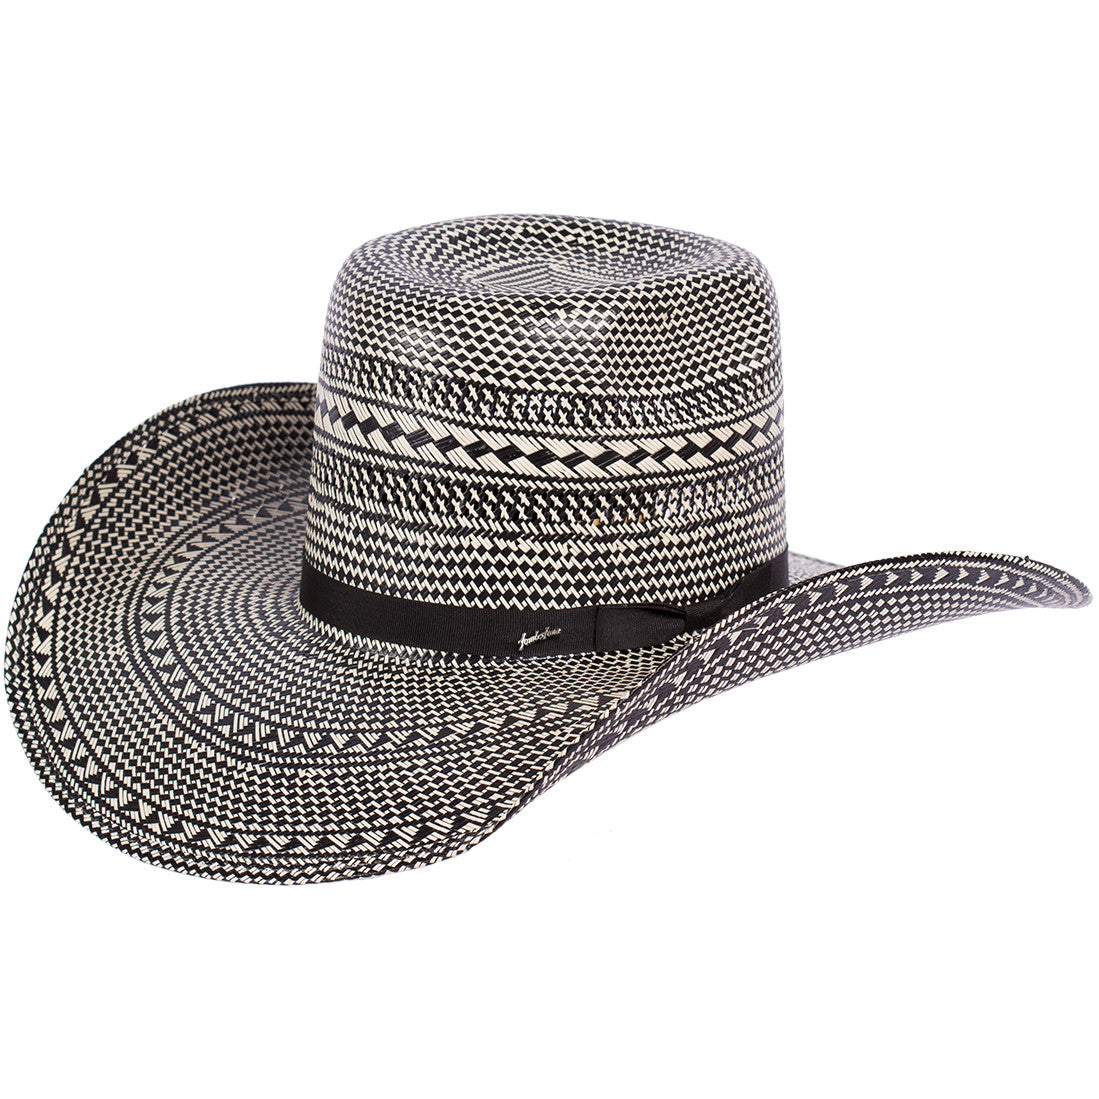 Tombstone Pro Bull Black/Natural Cowboy Hat